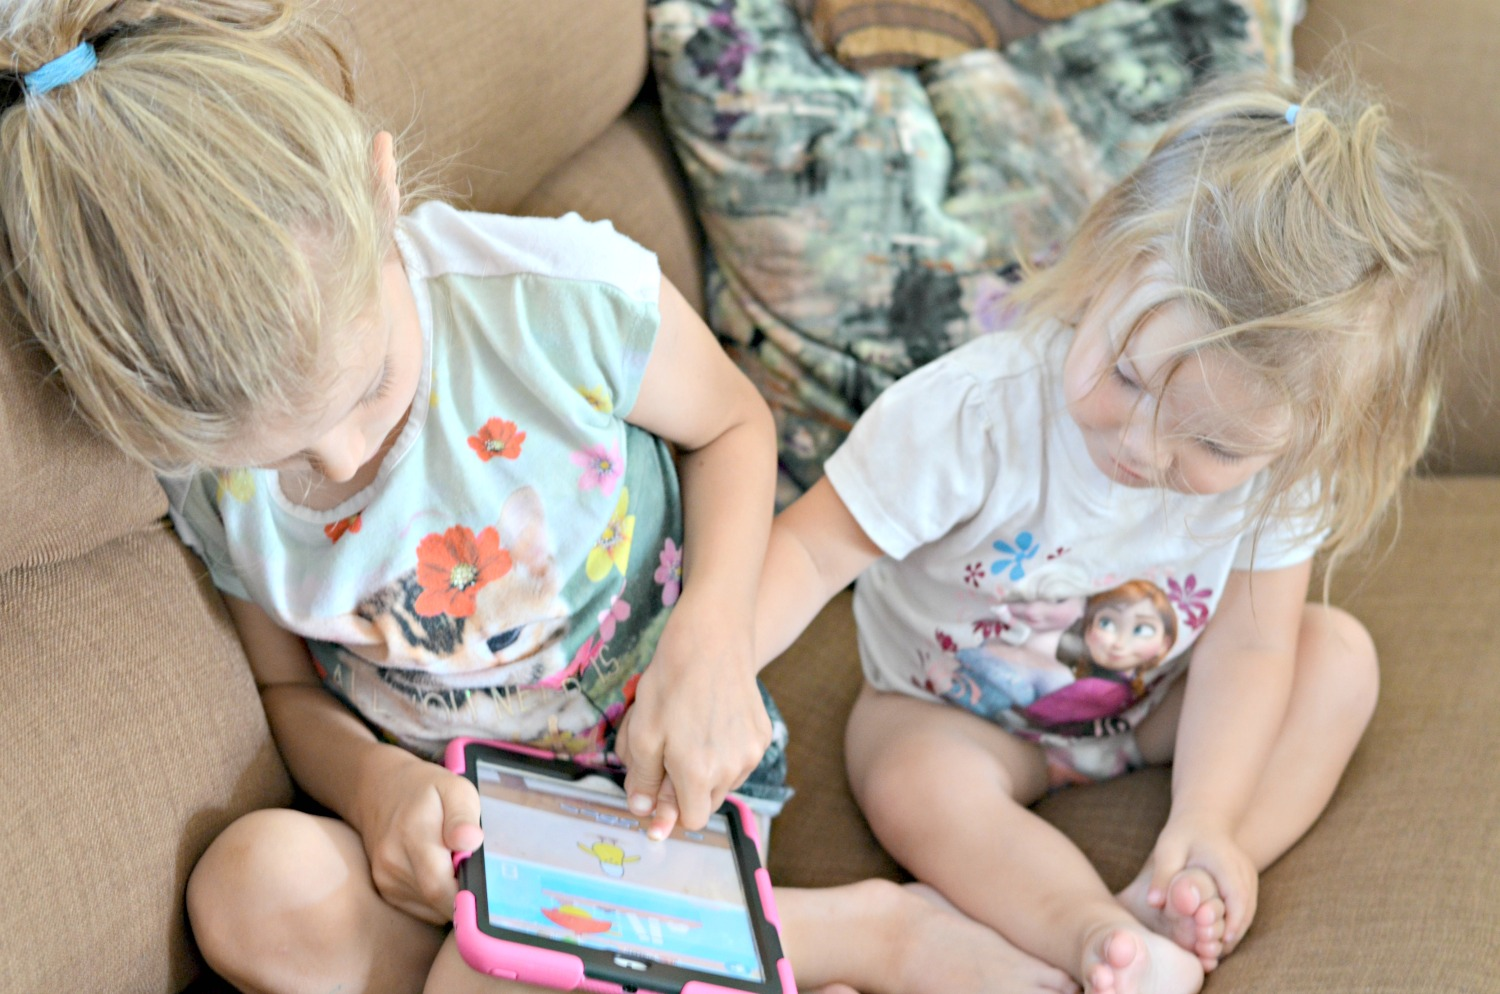 sisters, daughters, fun, parenting, ipad, sharing, bonding, cute, my sunday photo, early morning, sunday, girls